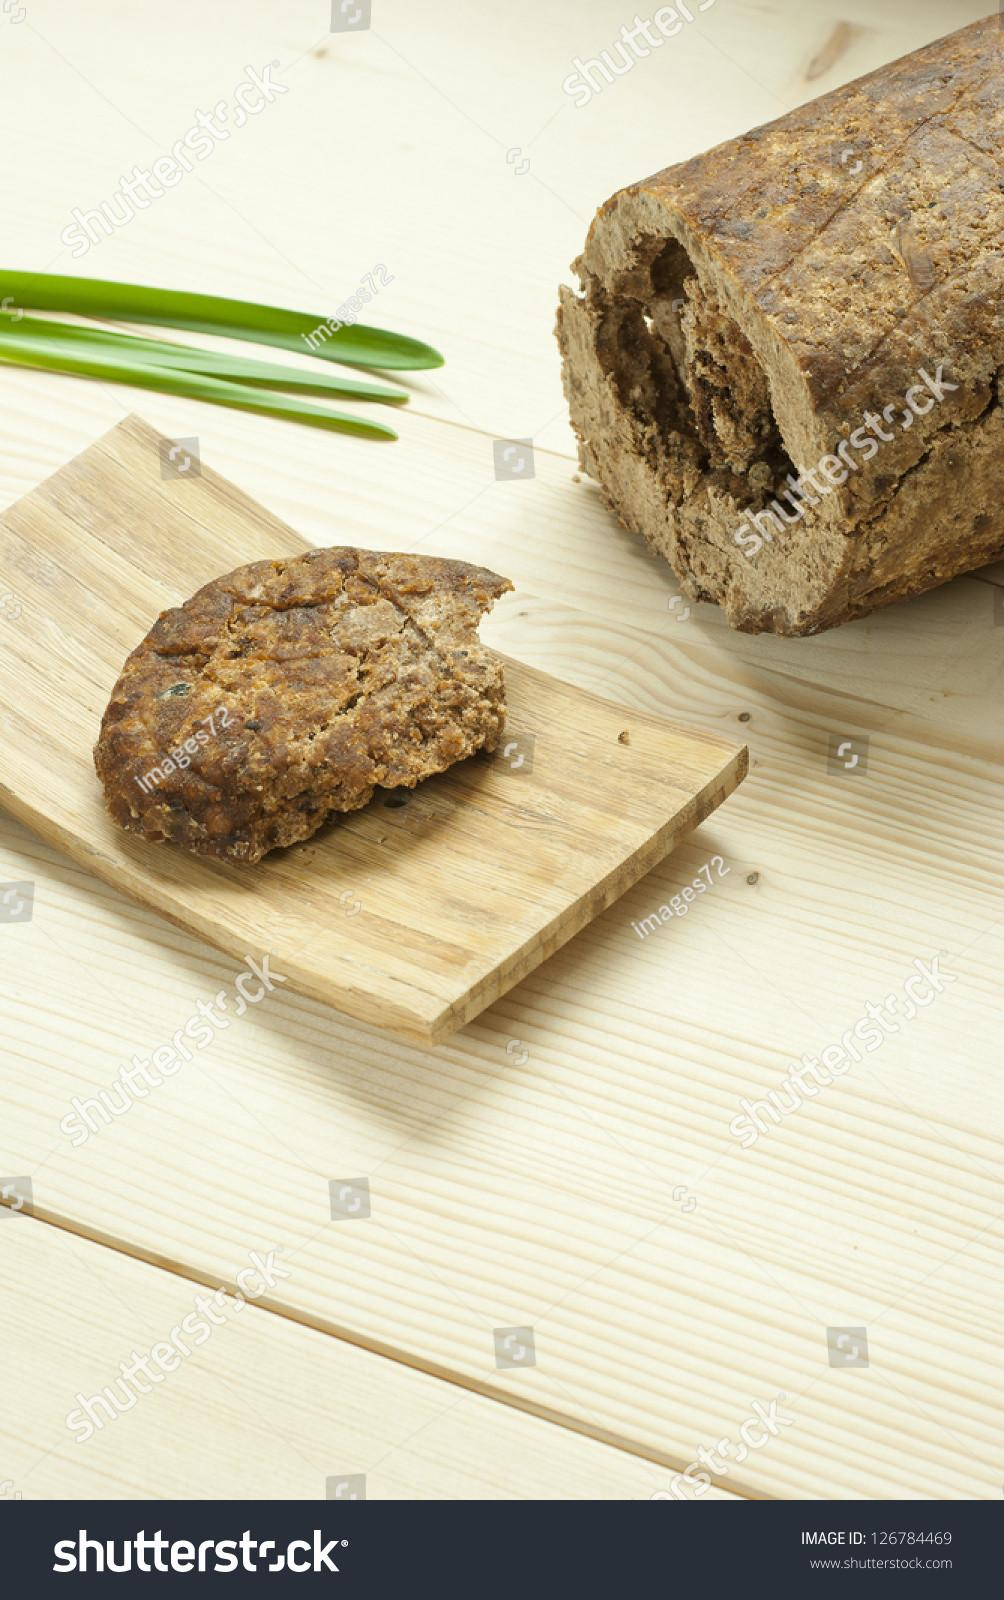 African Black Soap Homemade Soaps Wooden Stock